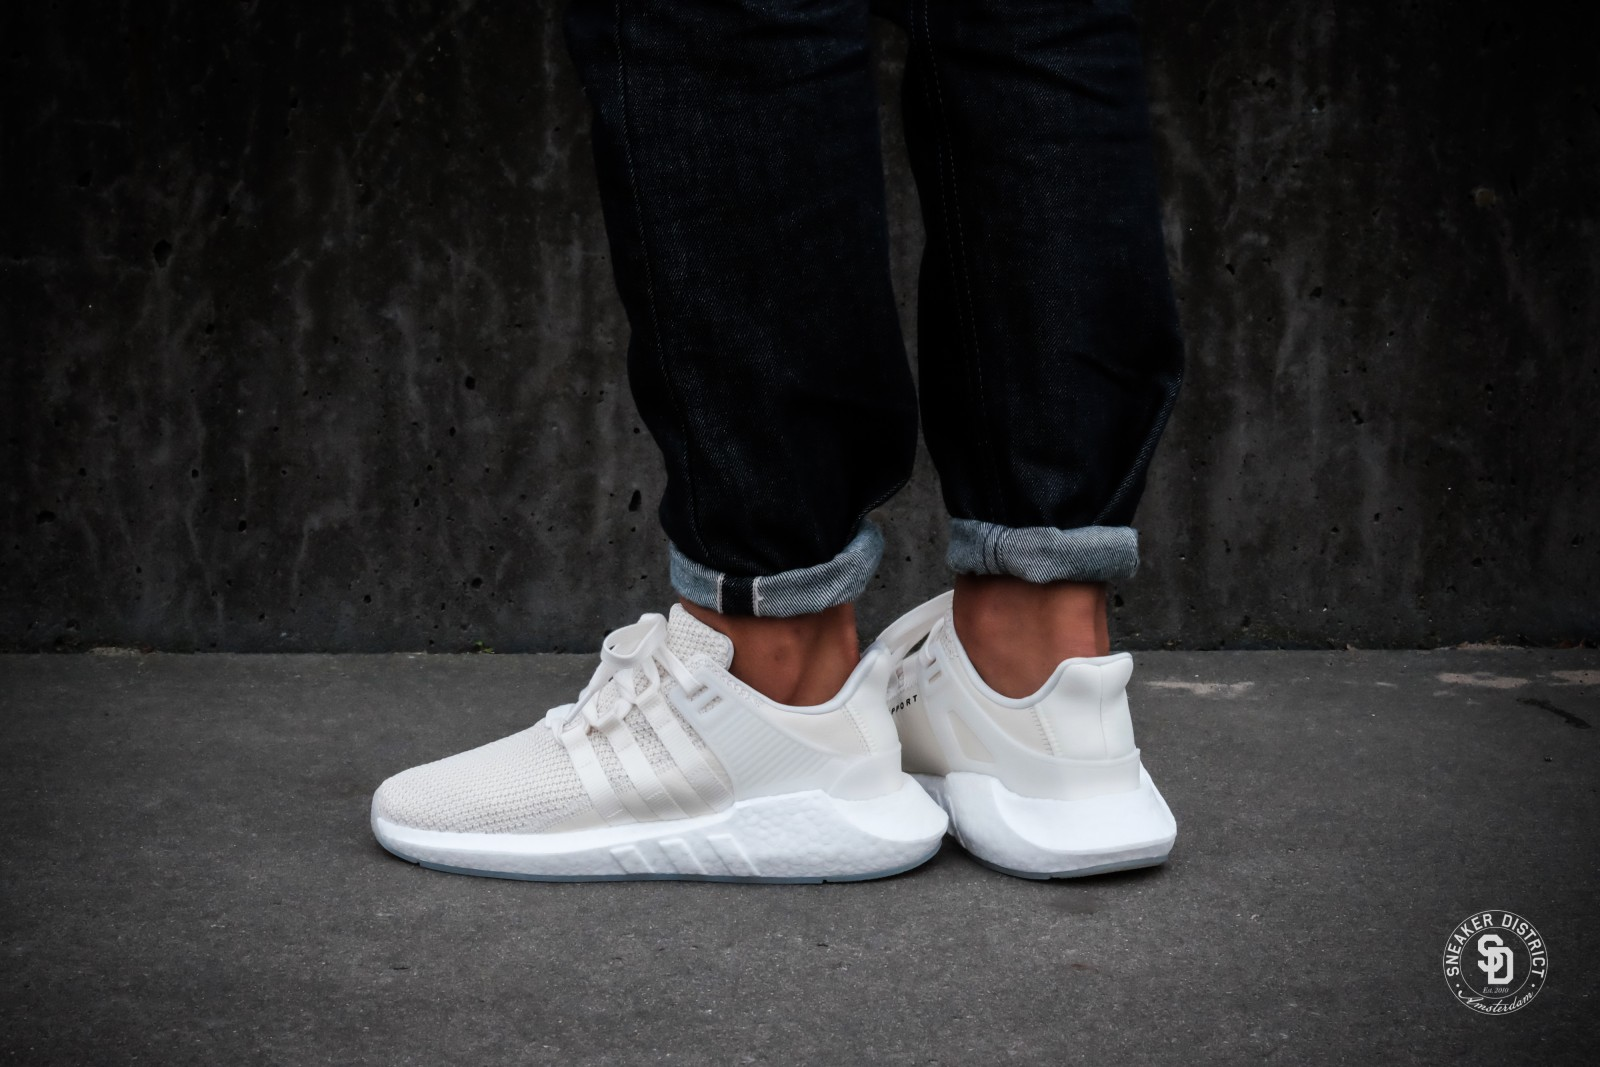 Adidas EQT Support 9317 Off WhiteFootwear White BZ0586